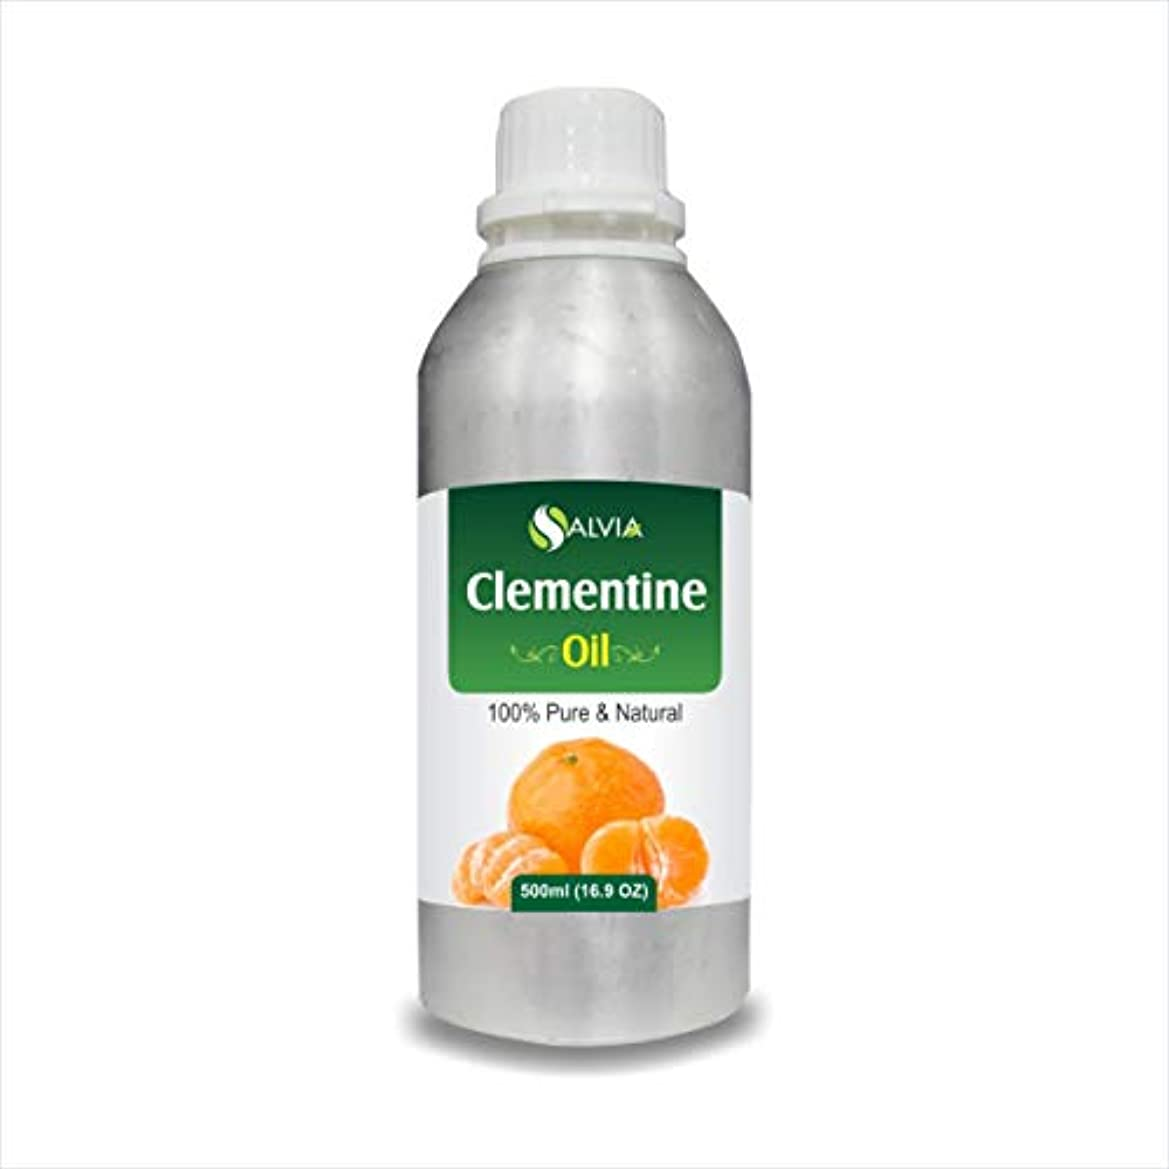 ウィザード強風オーケストラClementine Oil (Citrus Clementine) 100% Natural Pure Undiluted Uncut Essential Oil 500ml